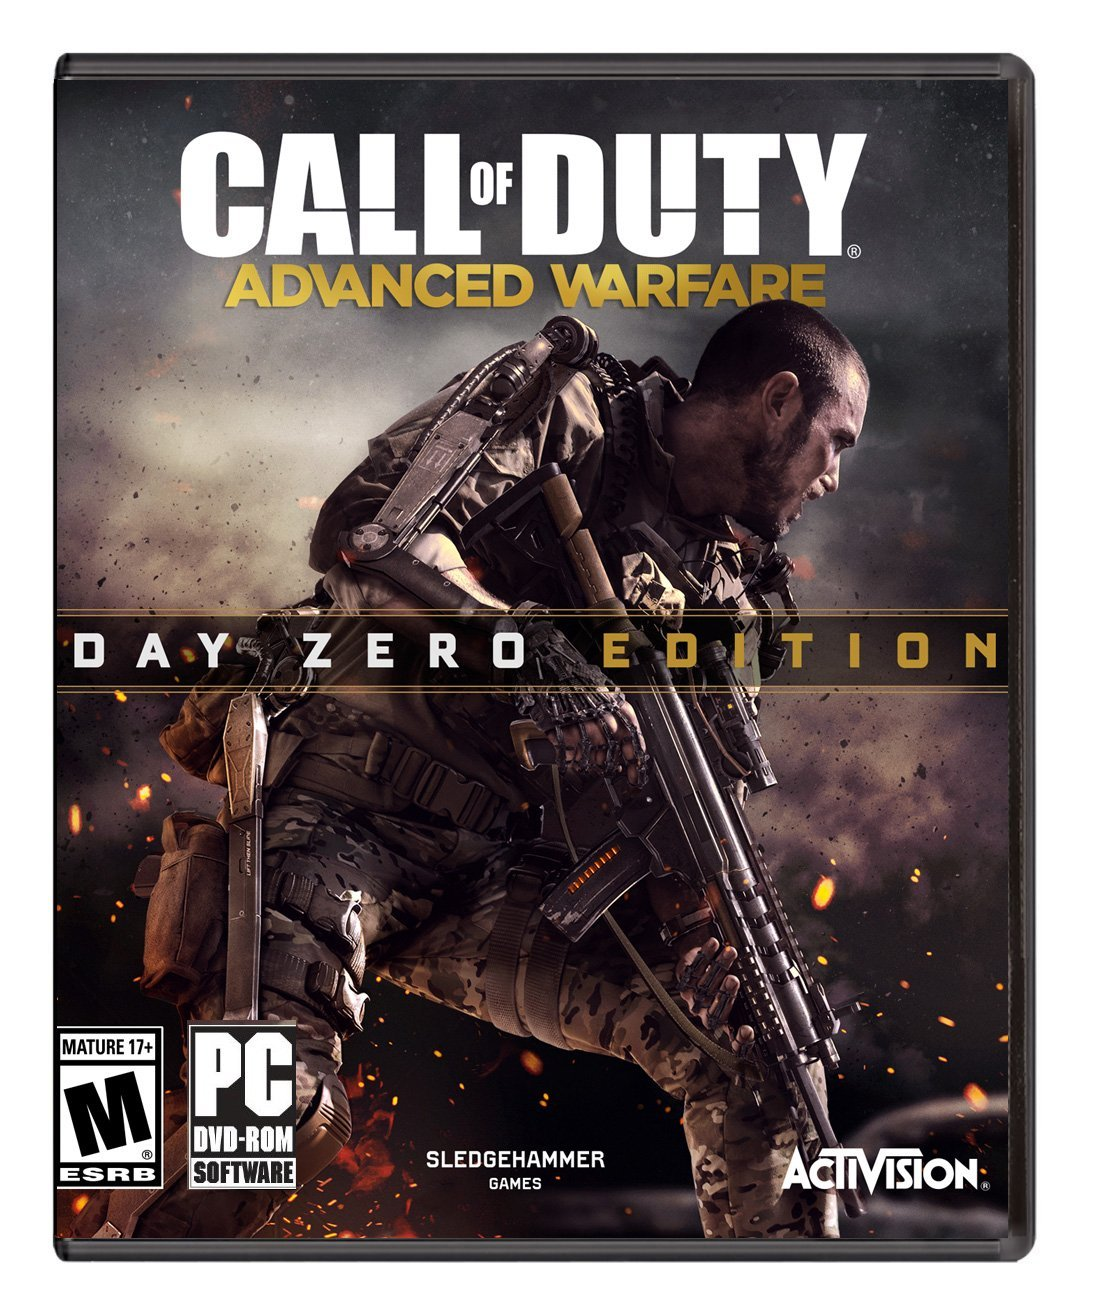 COD Call of Duty Advanced Warfare for Windows